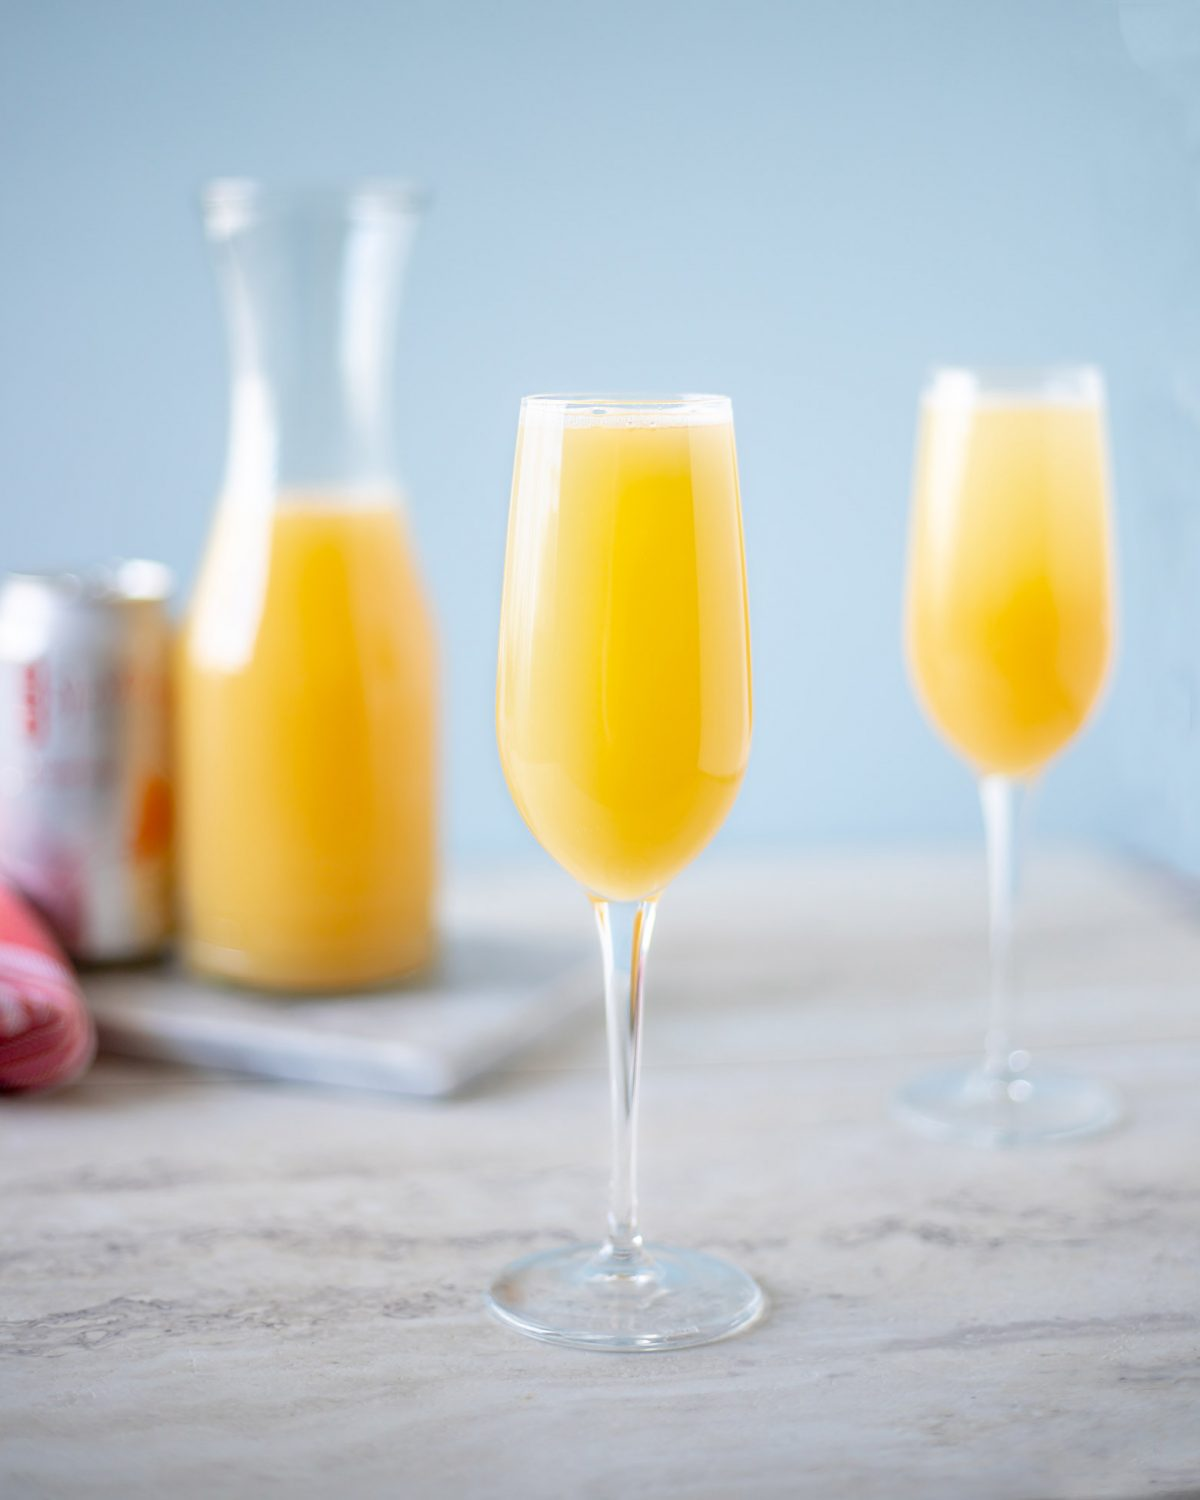 This mimosa mocktail is a non-alcoholic cocktail that uses fresh orange juice and flavored sparkling water similar to the classic mimosa cocktail. #Mocktail #Cocktail #CocktailRecipe #DrinkRecipe #ElleTalk